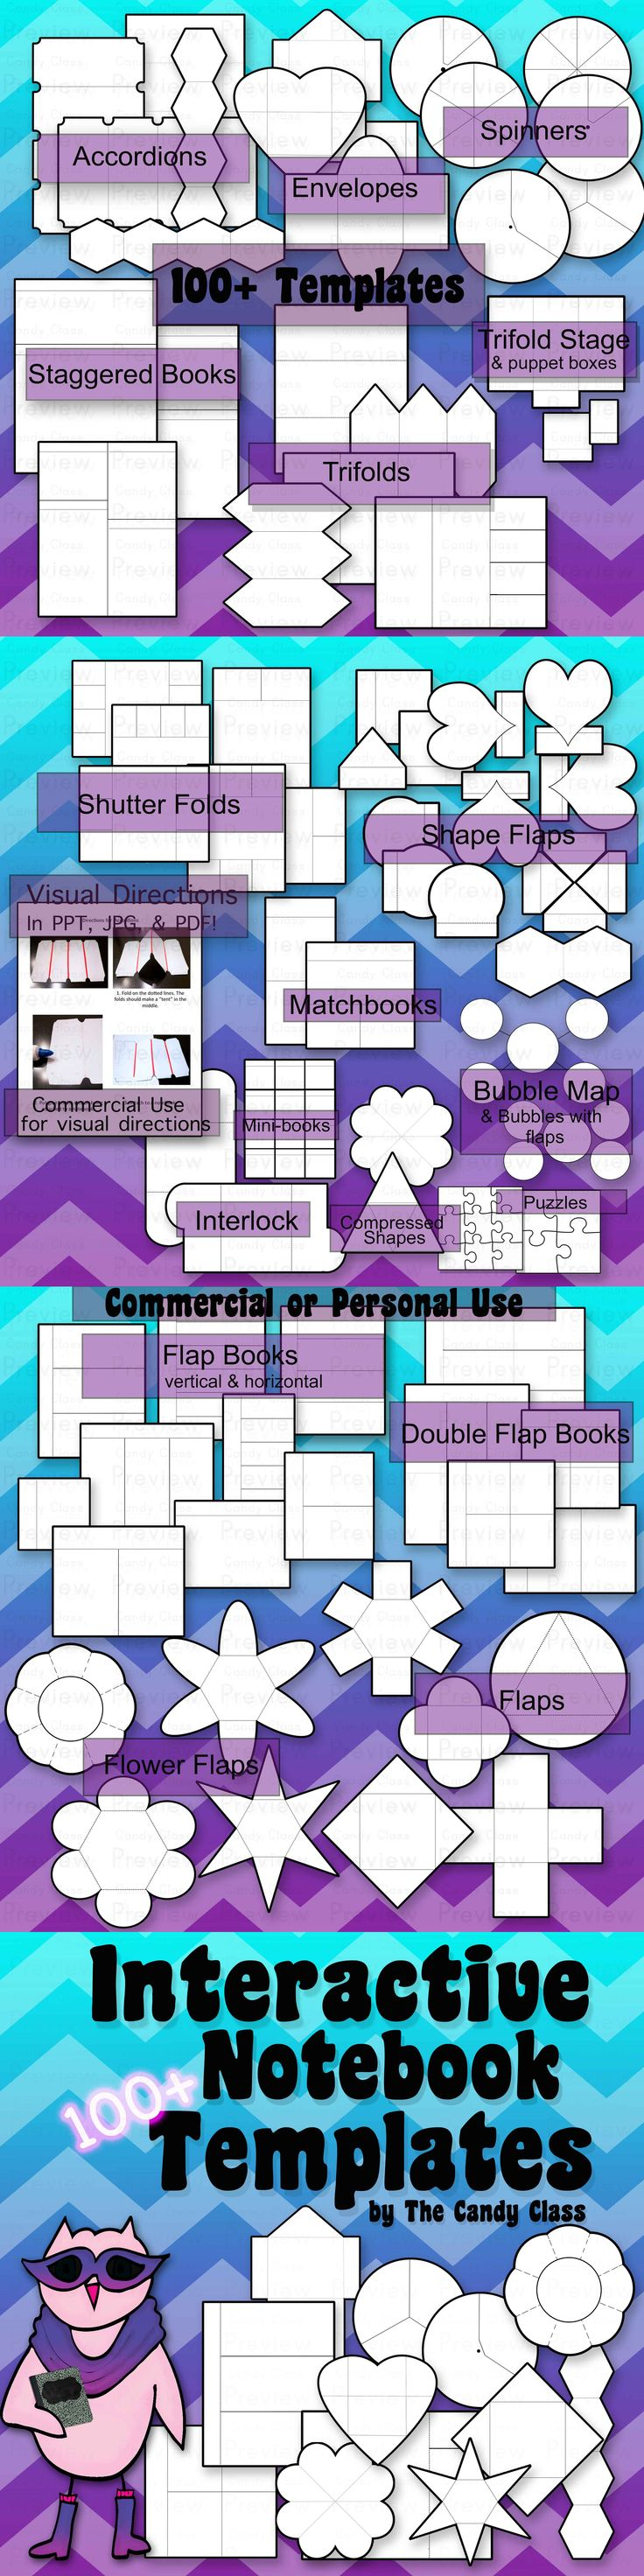 Interacting Notebook Templates with 100+ blank templates for Commercial and Personal use. Templates come in 300 dpi png images and PPT.